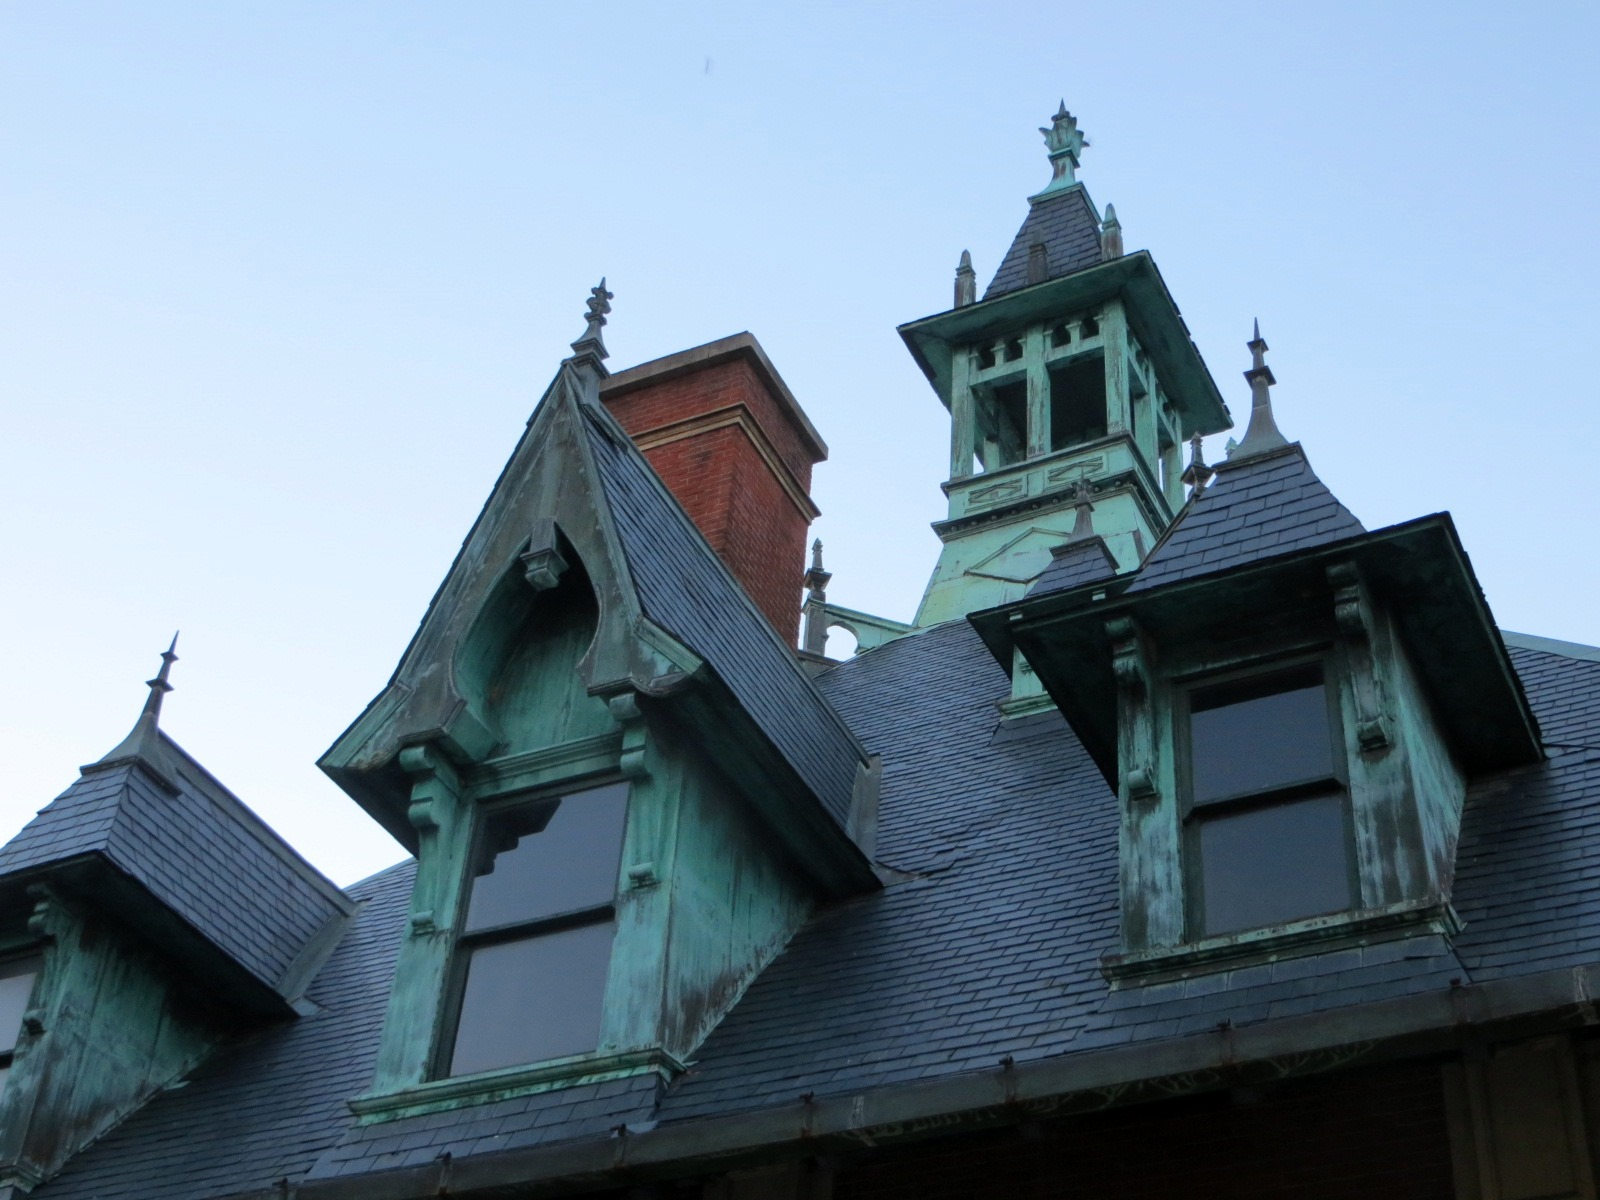 Dormers and Terra cotta ornaments on Custom House Museum